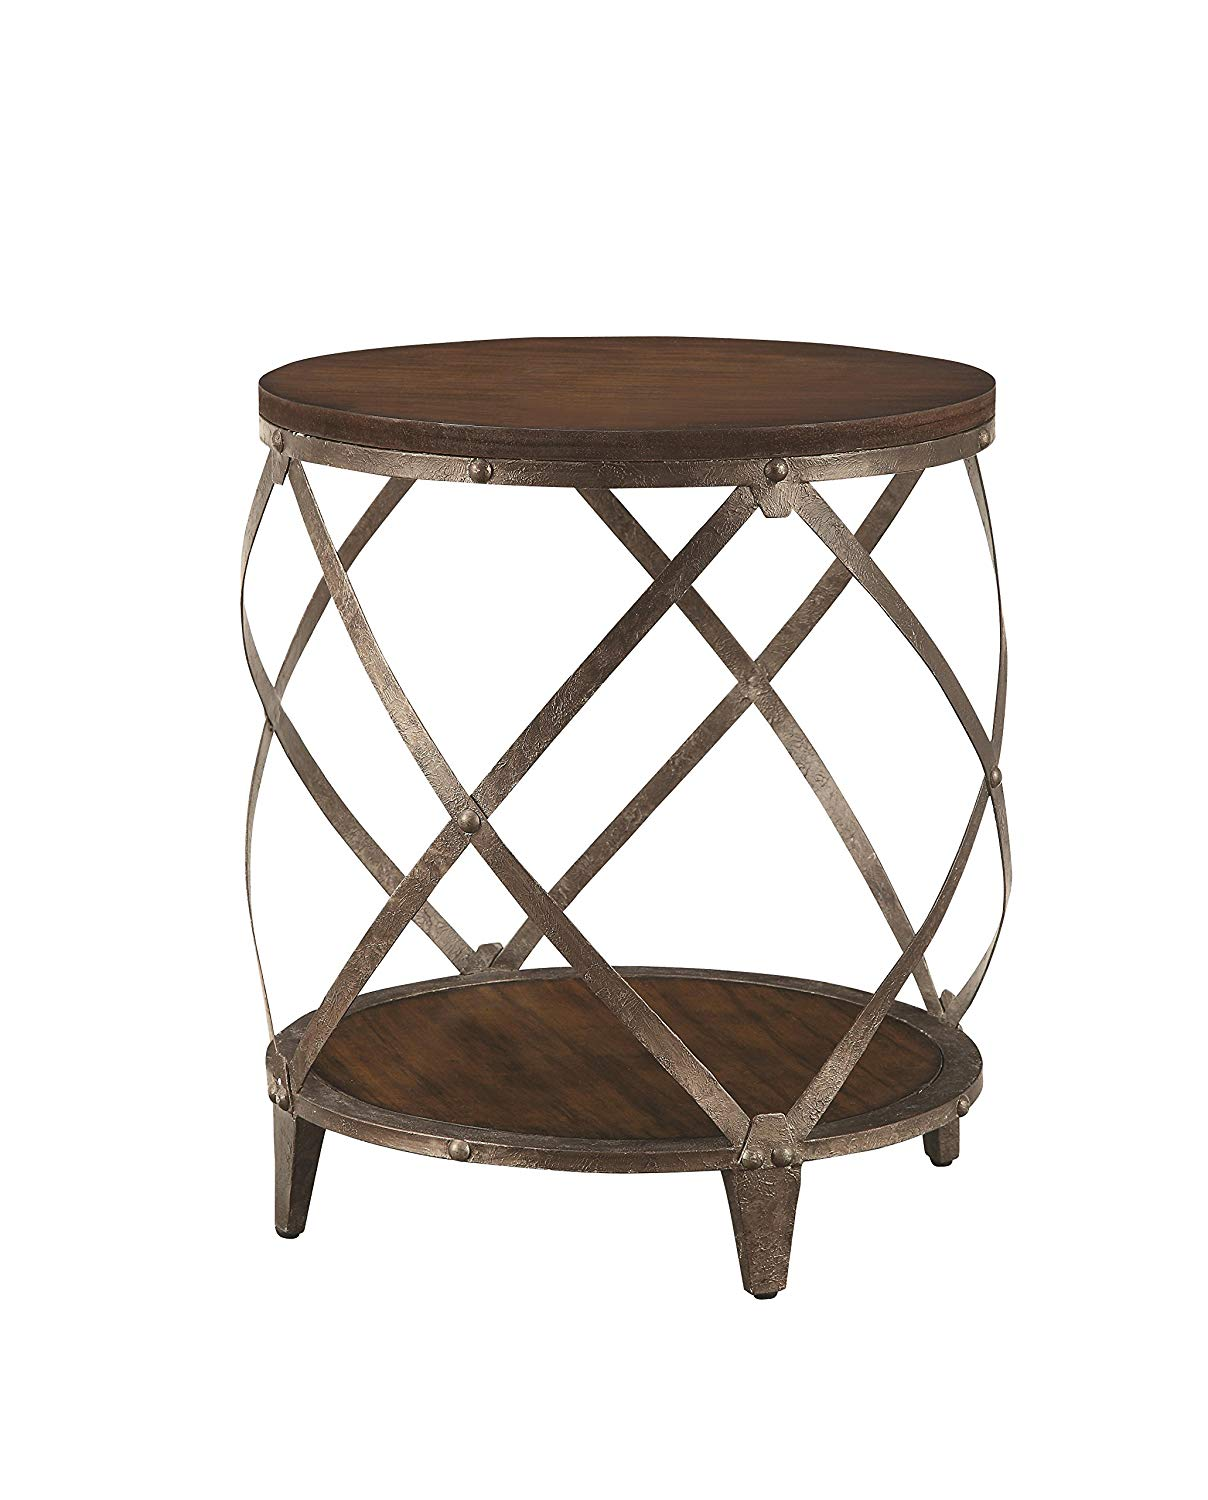 metal accent table with drum shape brown kitchen dining threshold solid hardwood end tables counter height legs entry room apartment decor small balcony umbrella round furniture